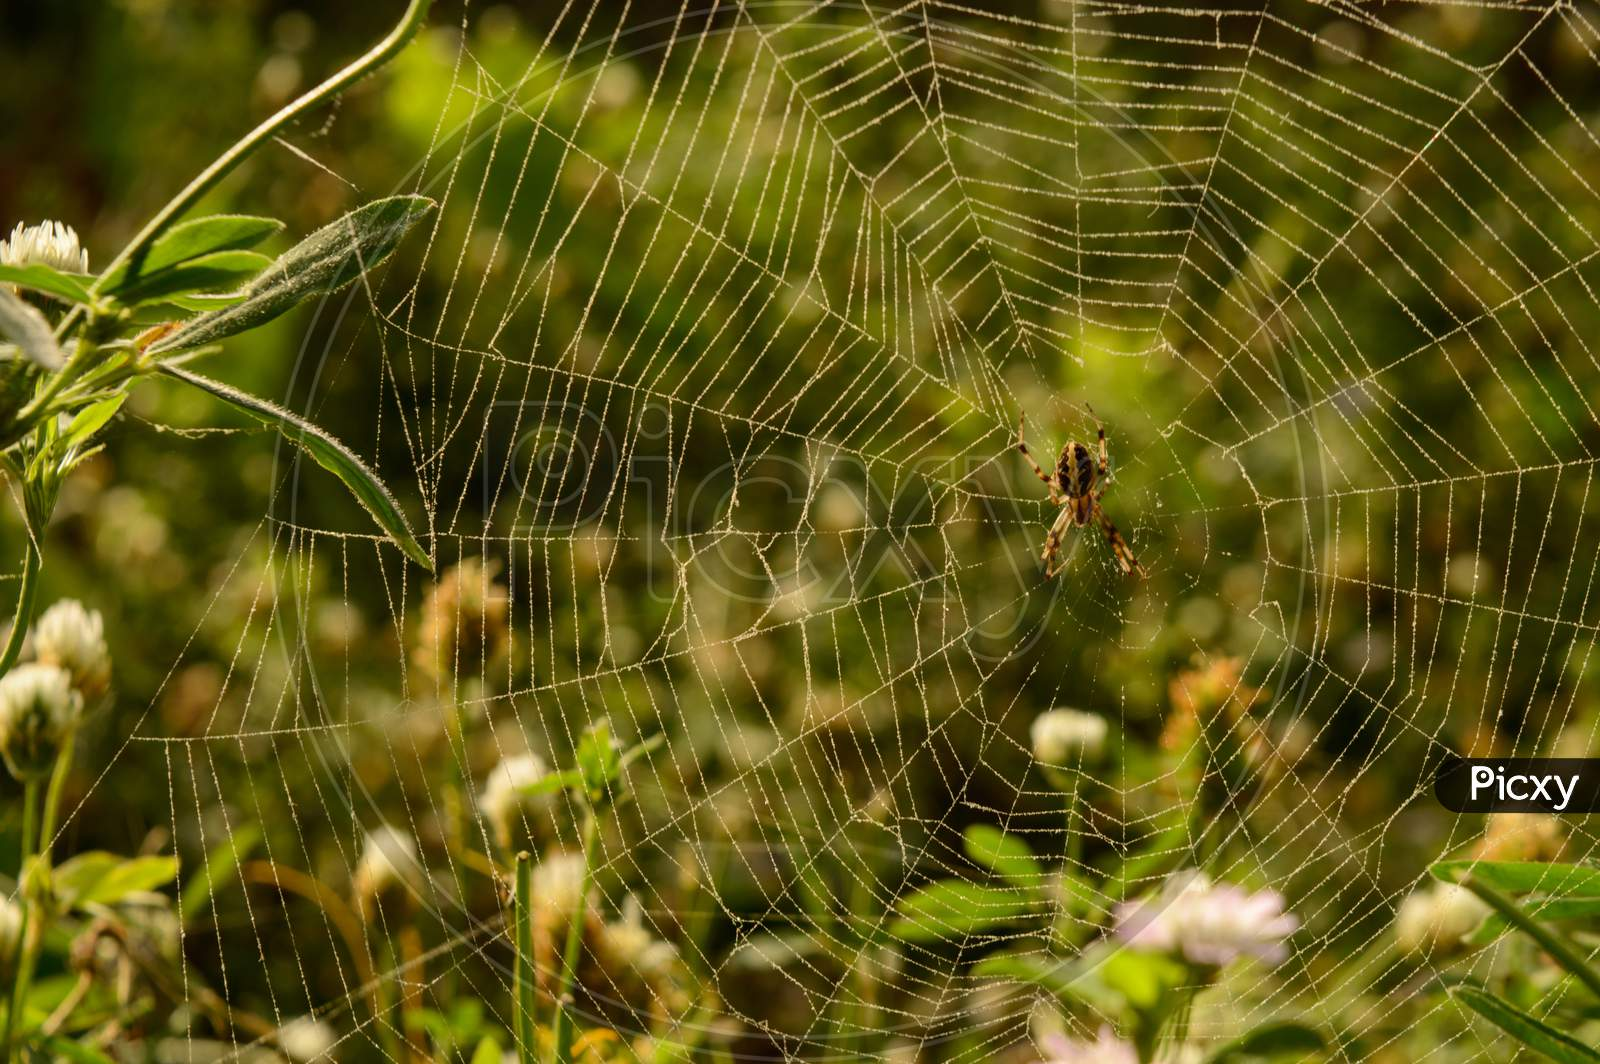 A Web Of Indian Spider Who Is Relaxing On Web At Evening.